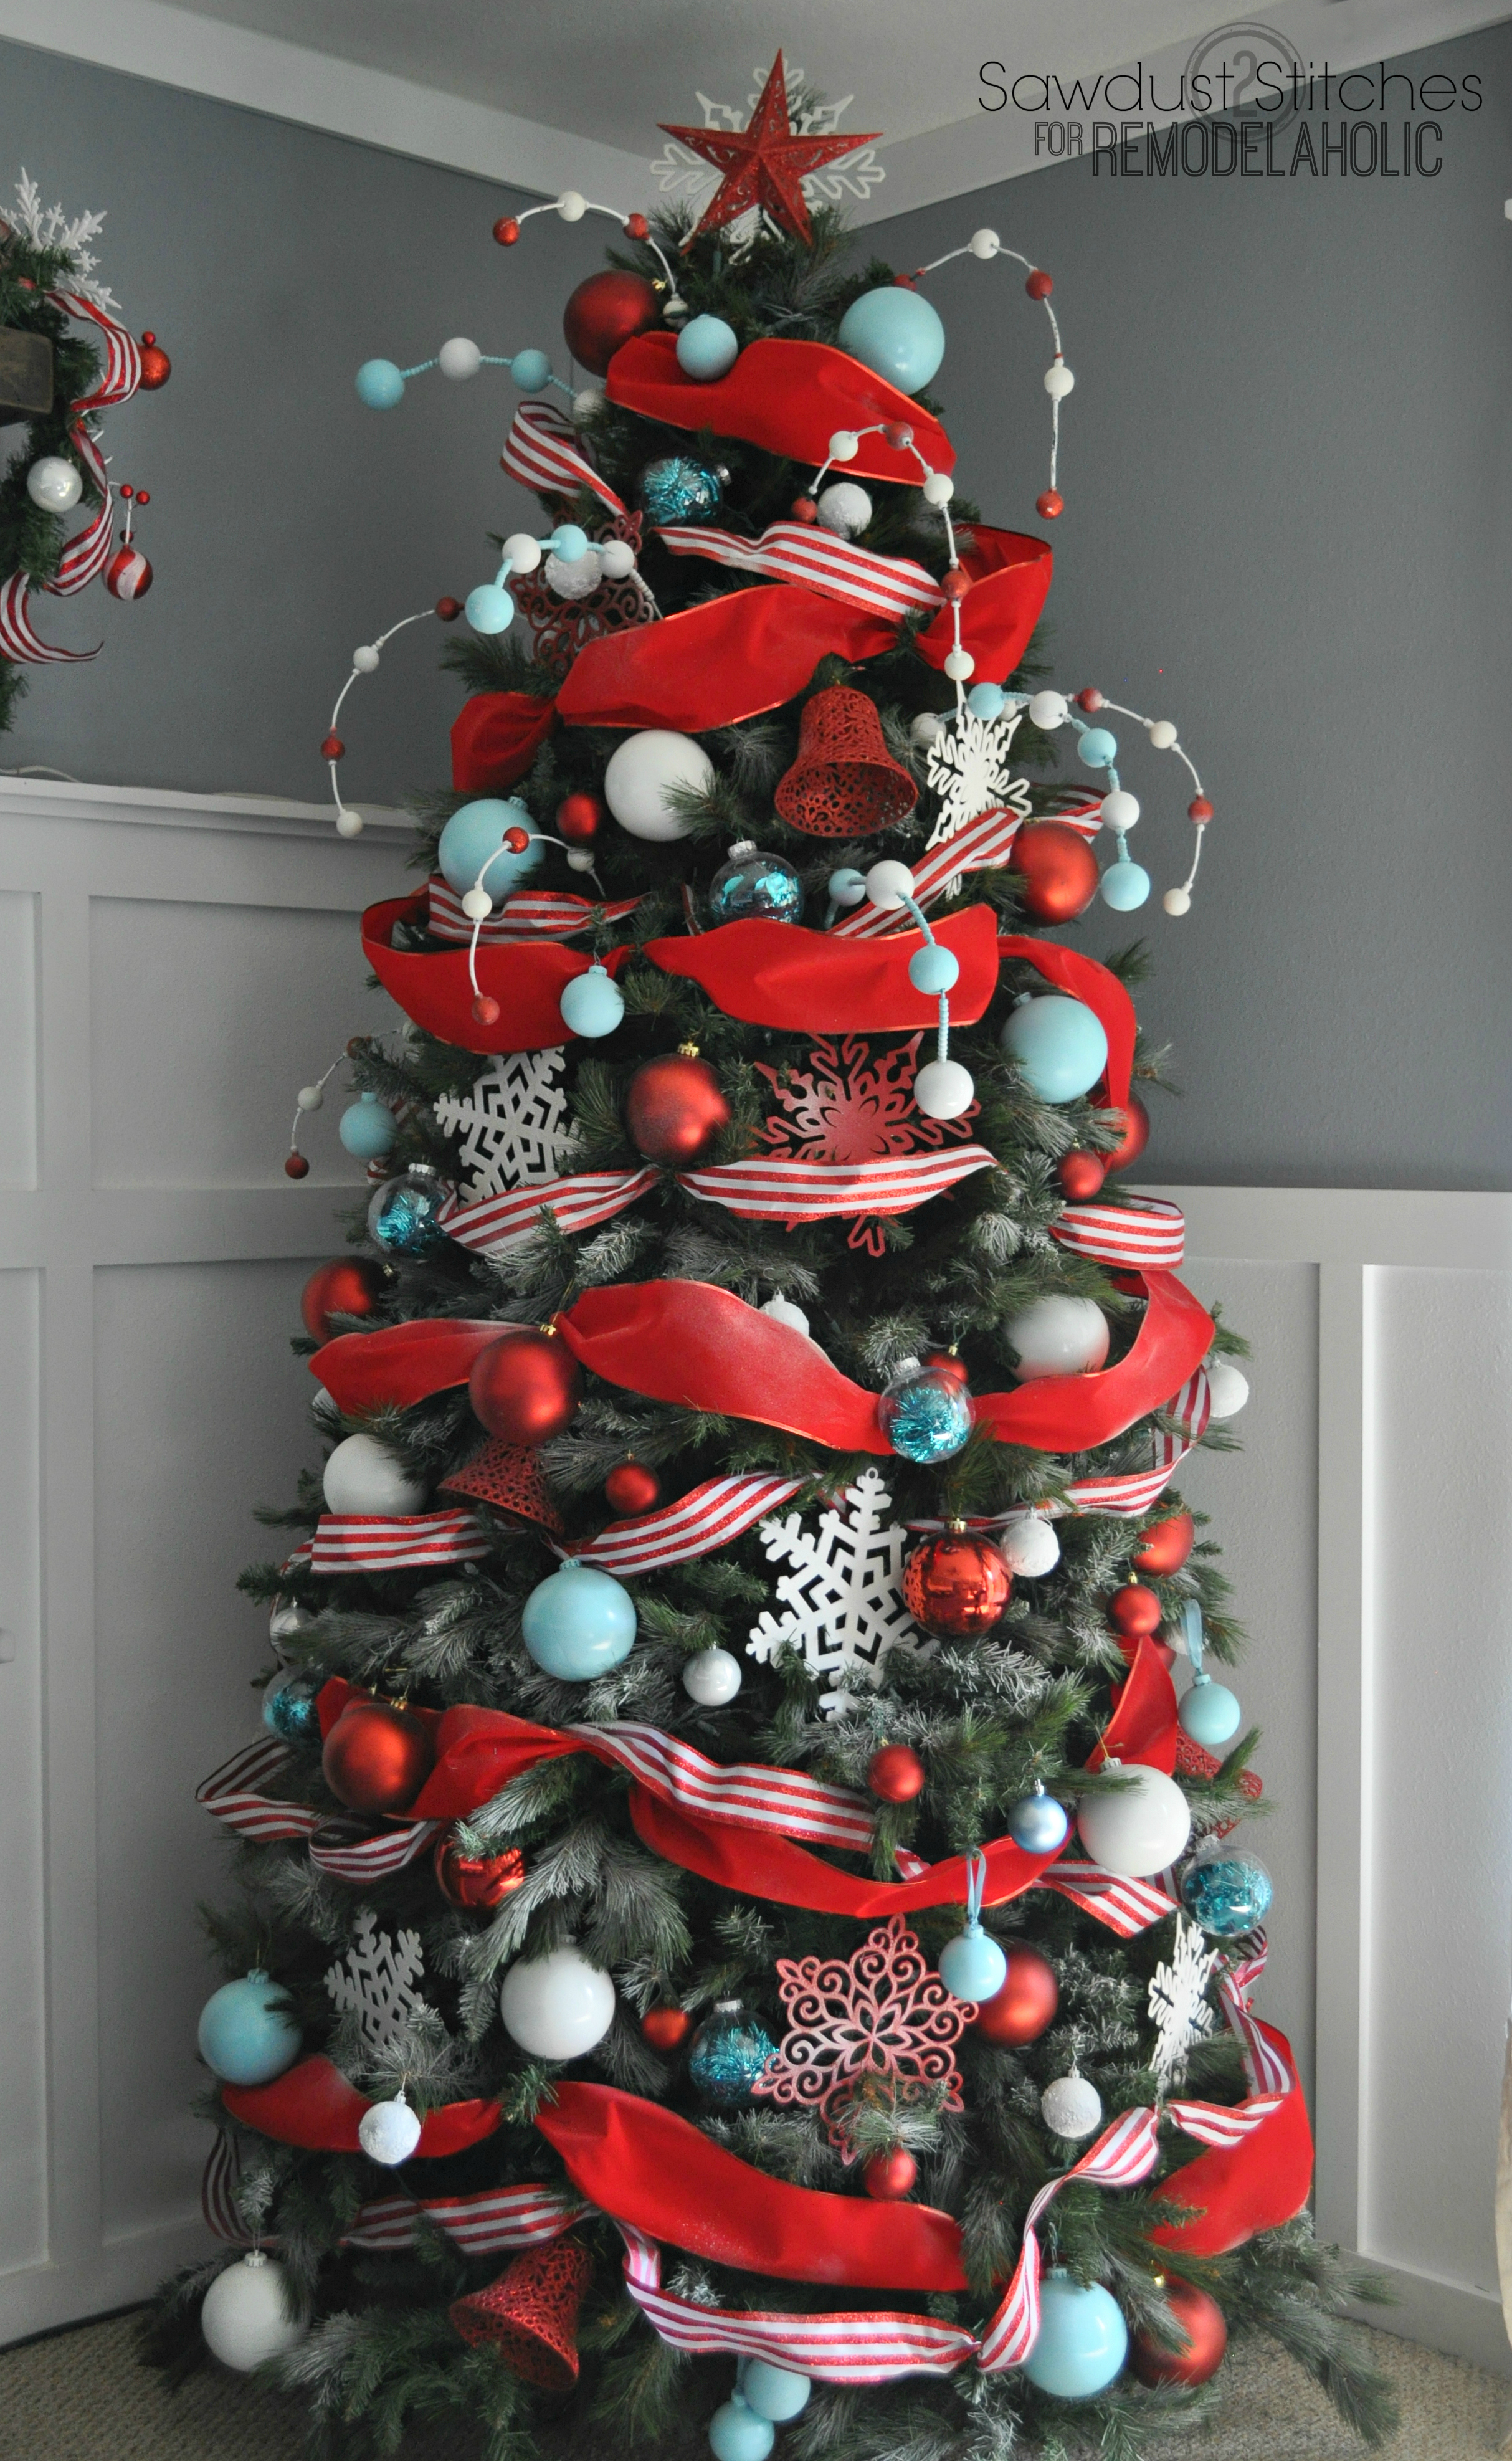 How To Decorate A Christmas Tree Like Professional Remodelaholic Sawdust2sches